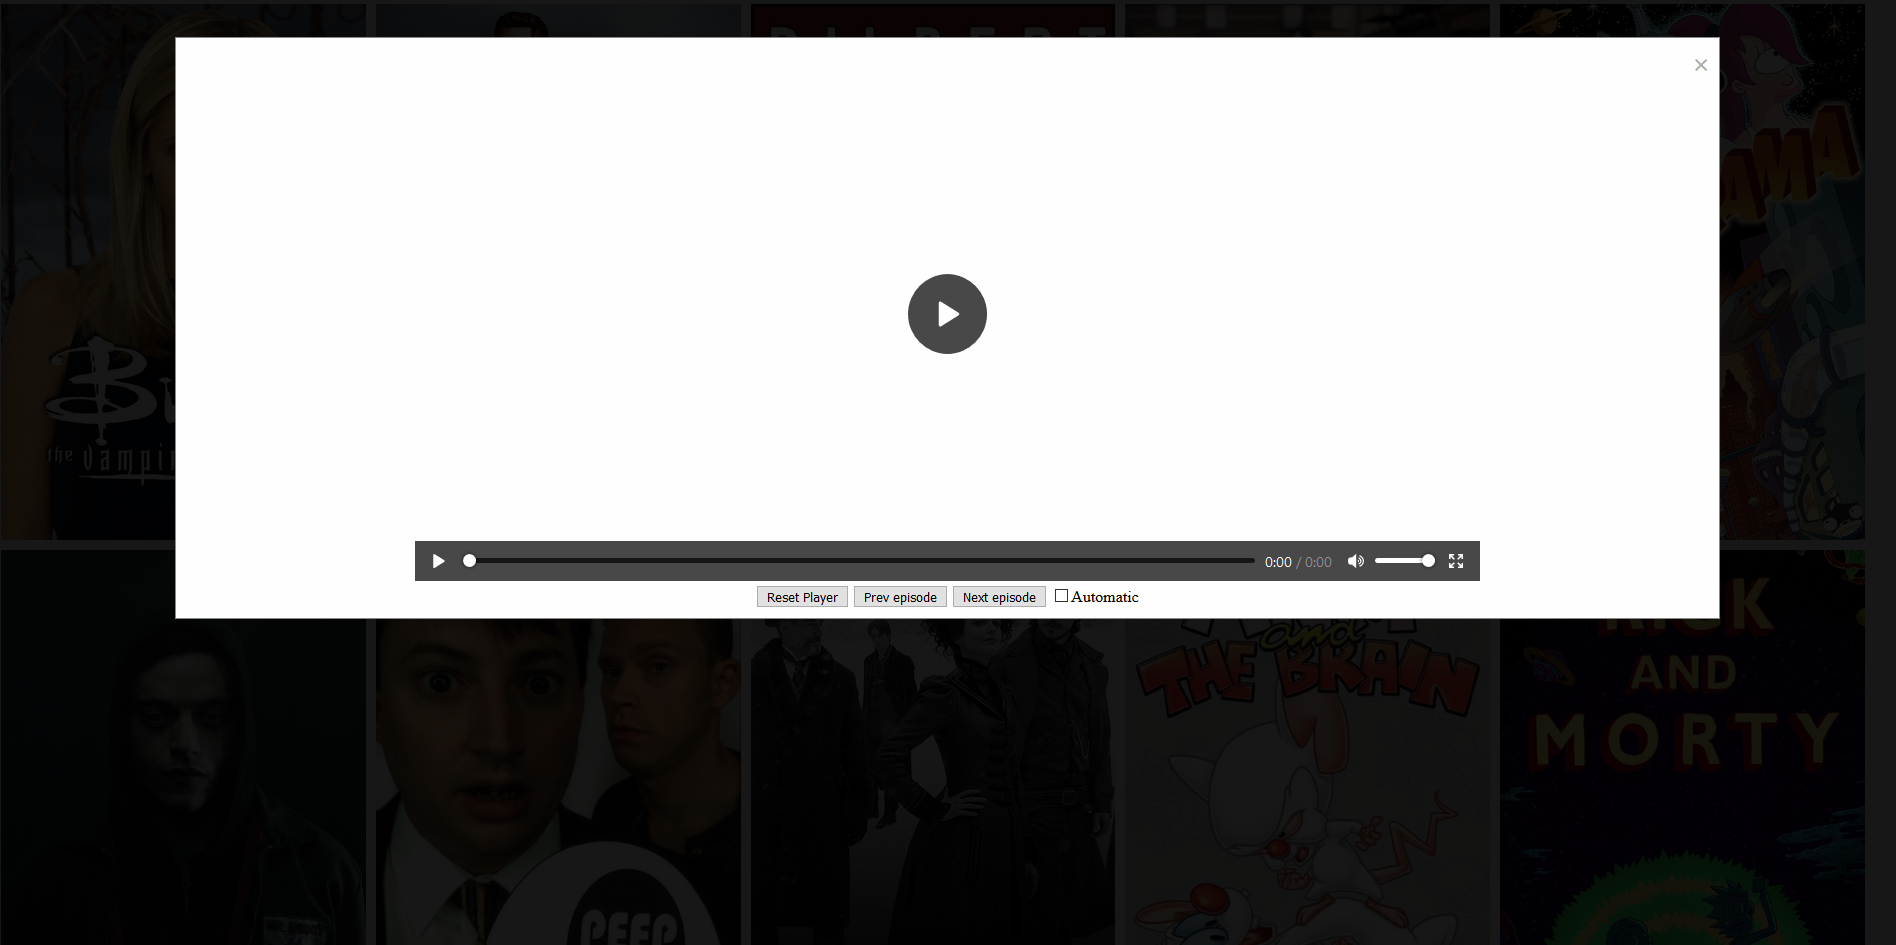 TV show episode player